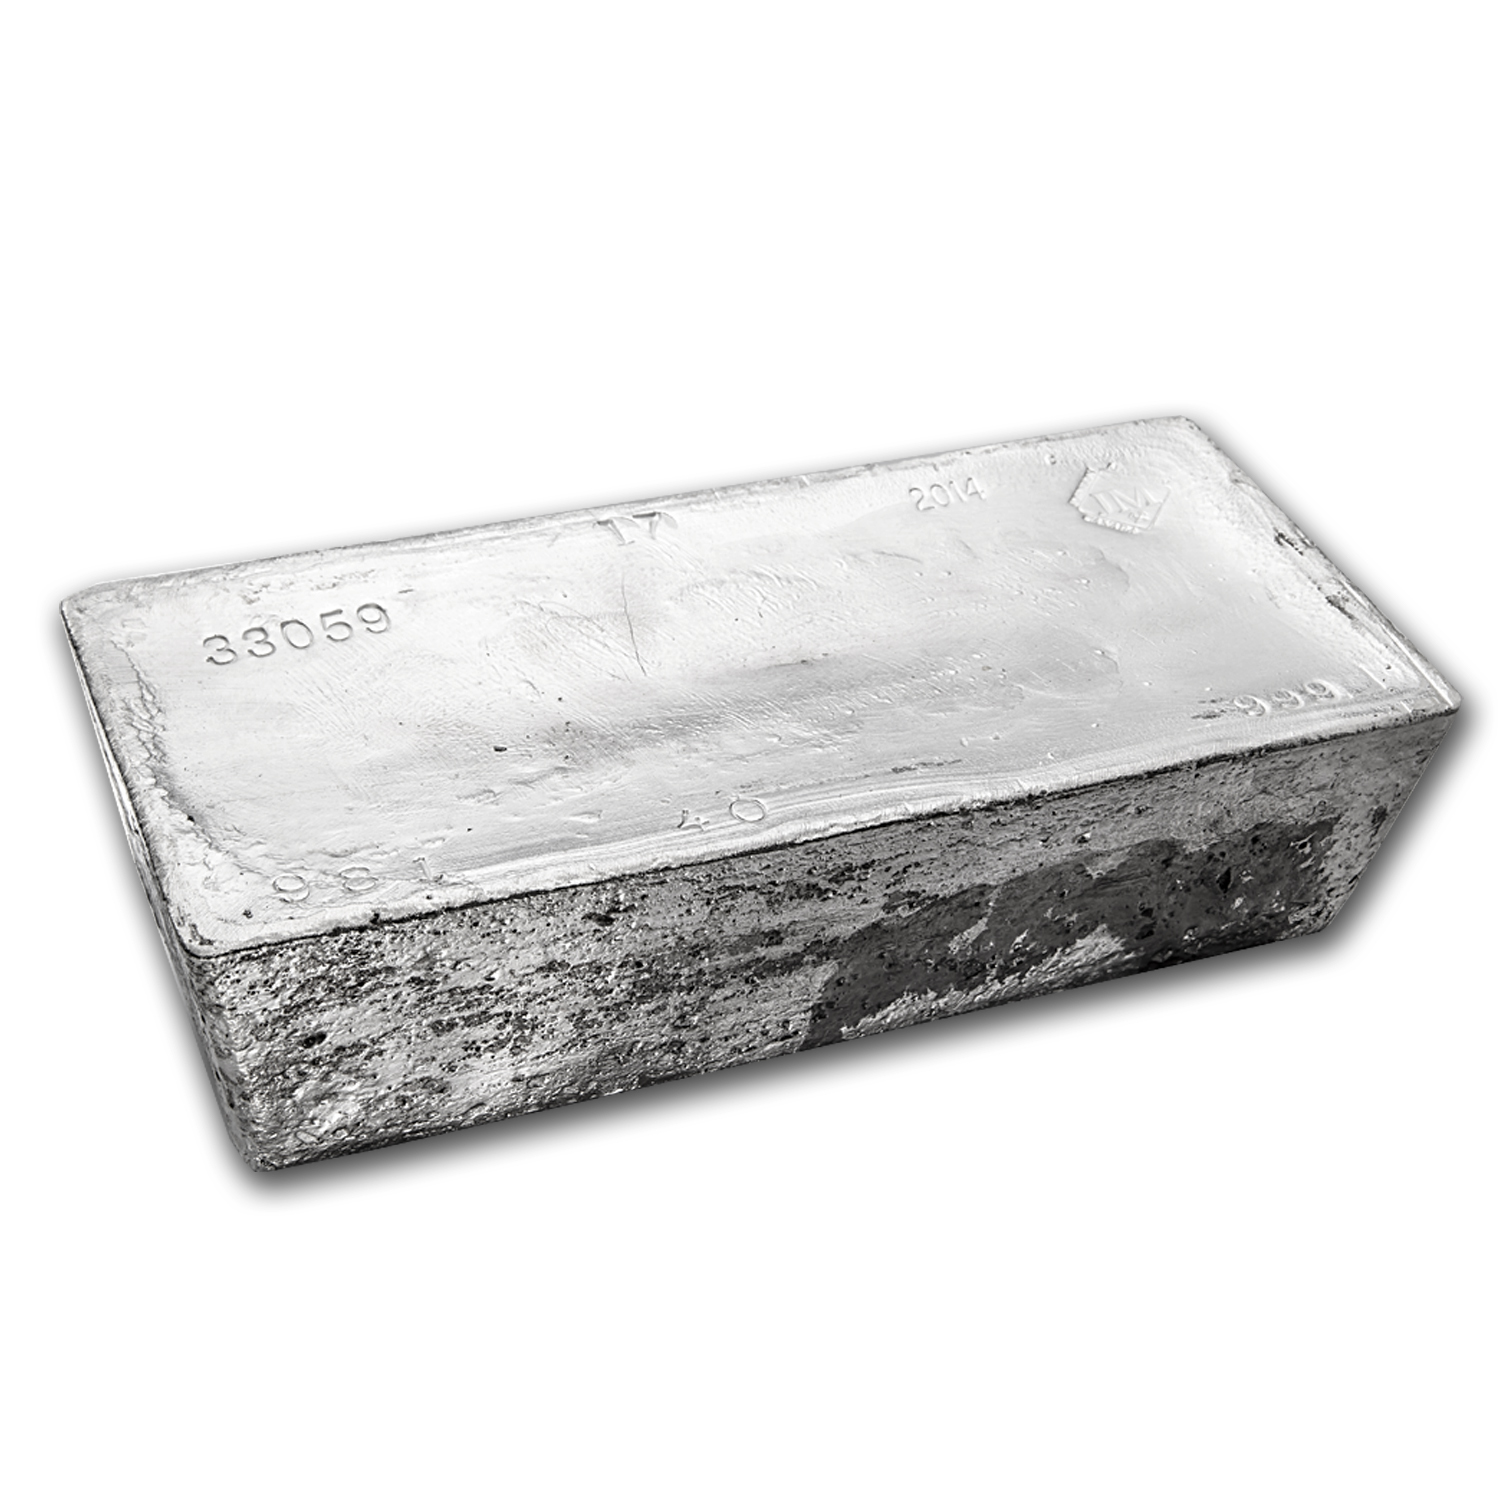 1013.20 oz Silver Bar - ASAH (#00155-13)